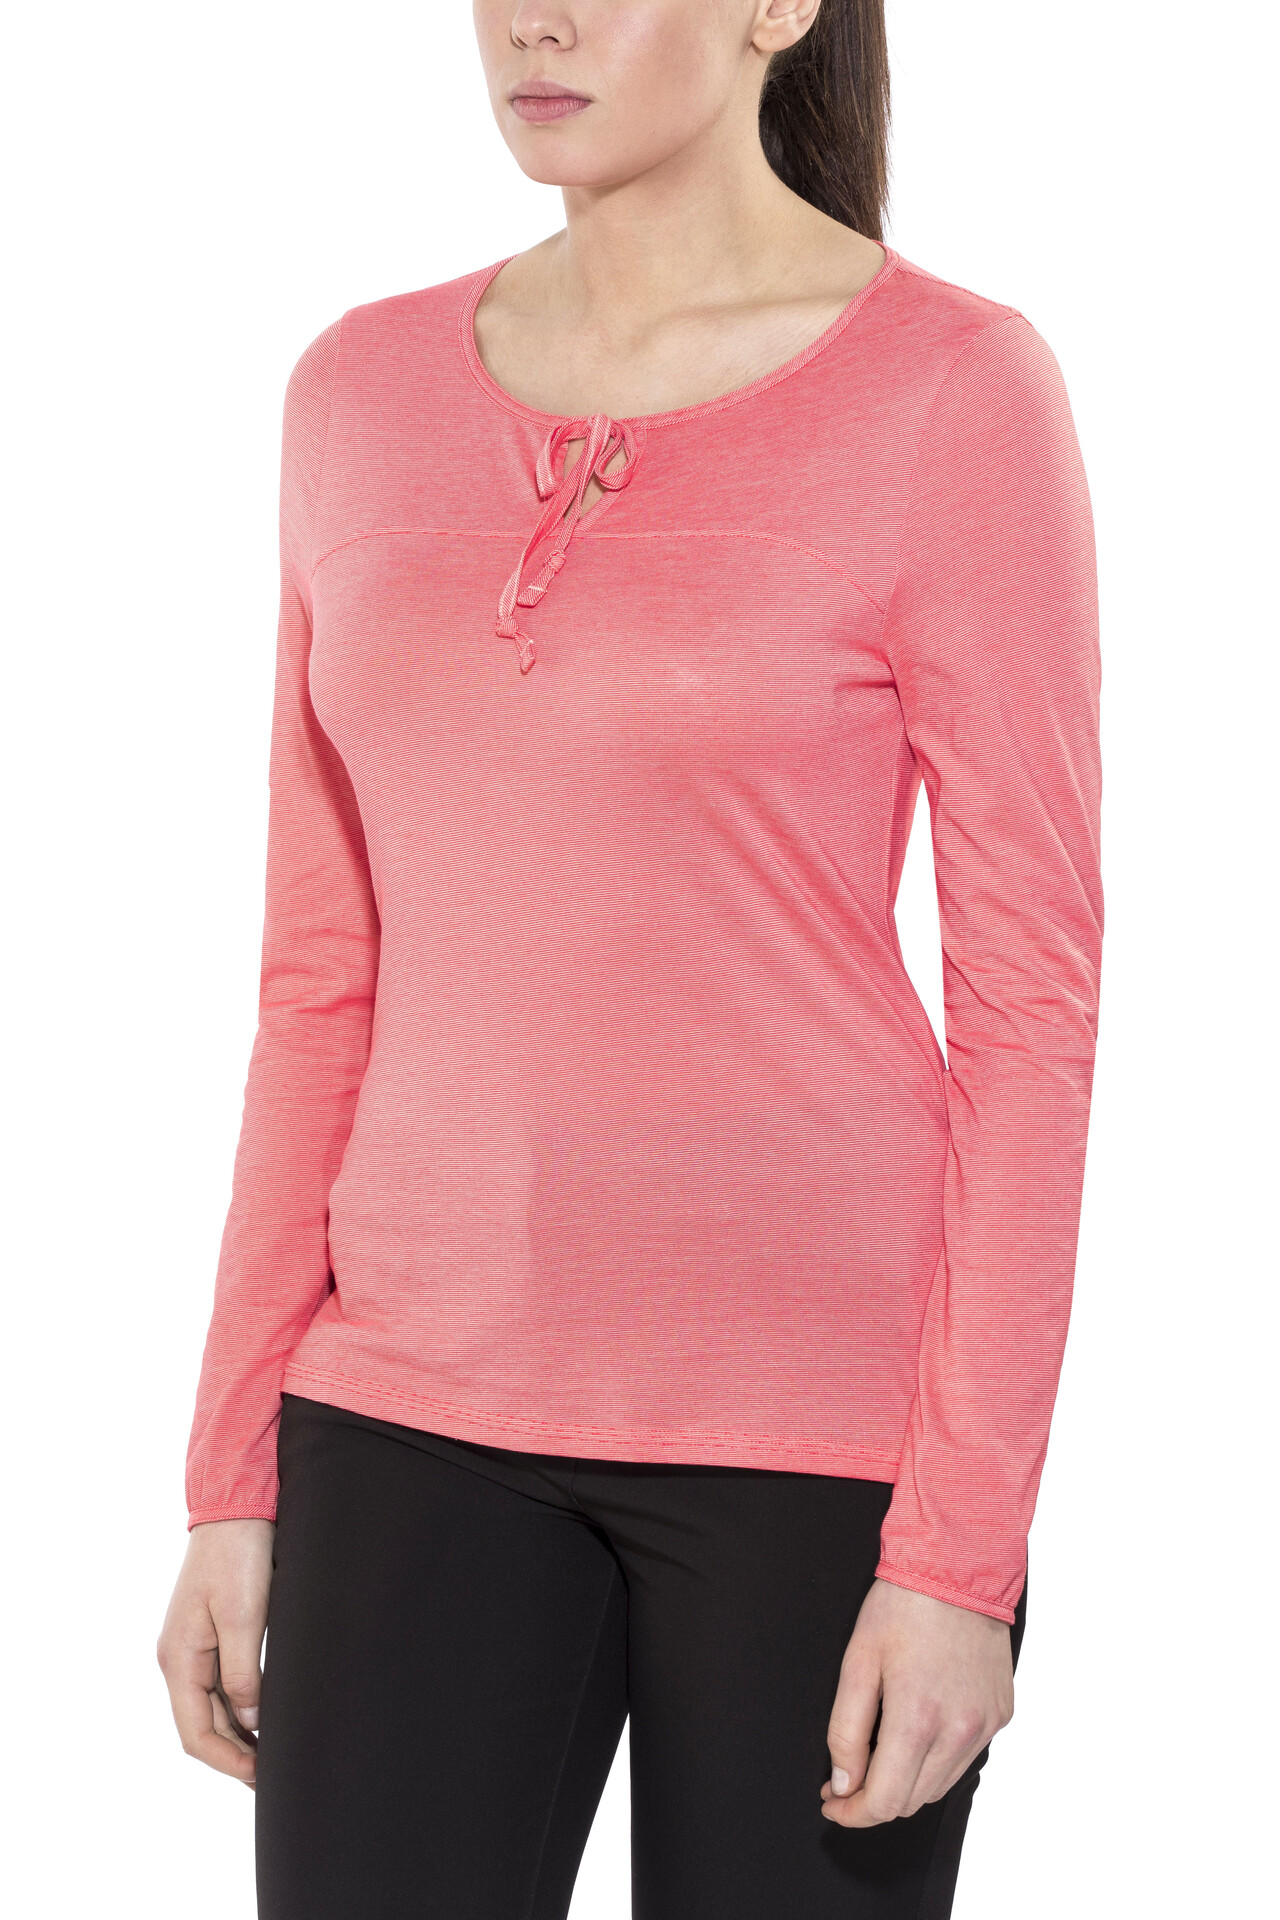 The Rosa Dayspring Face North Mujer Larga Camiseta Manga De q74Uqxwrz8